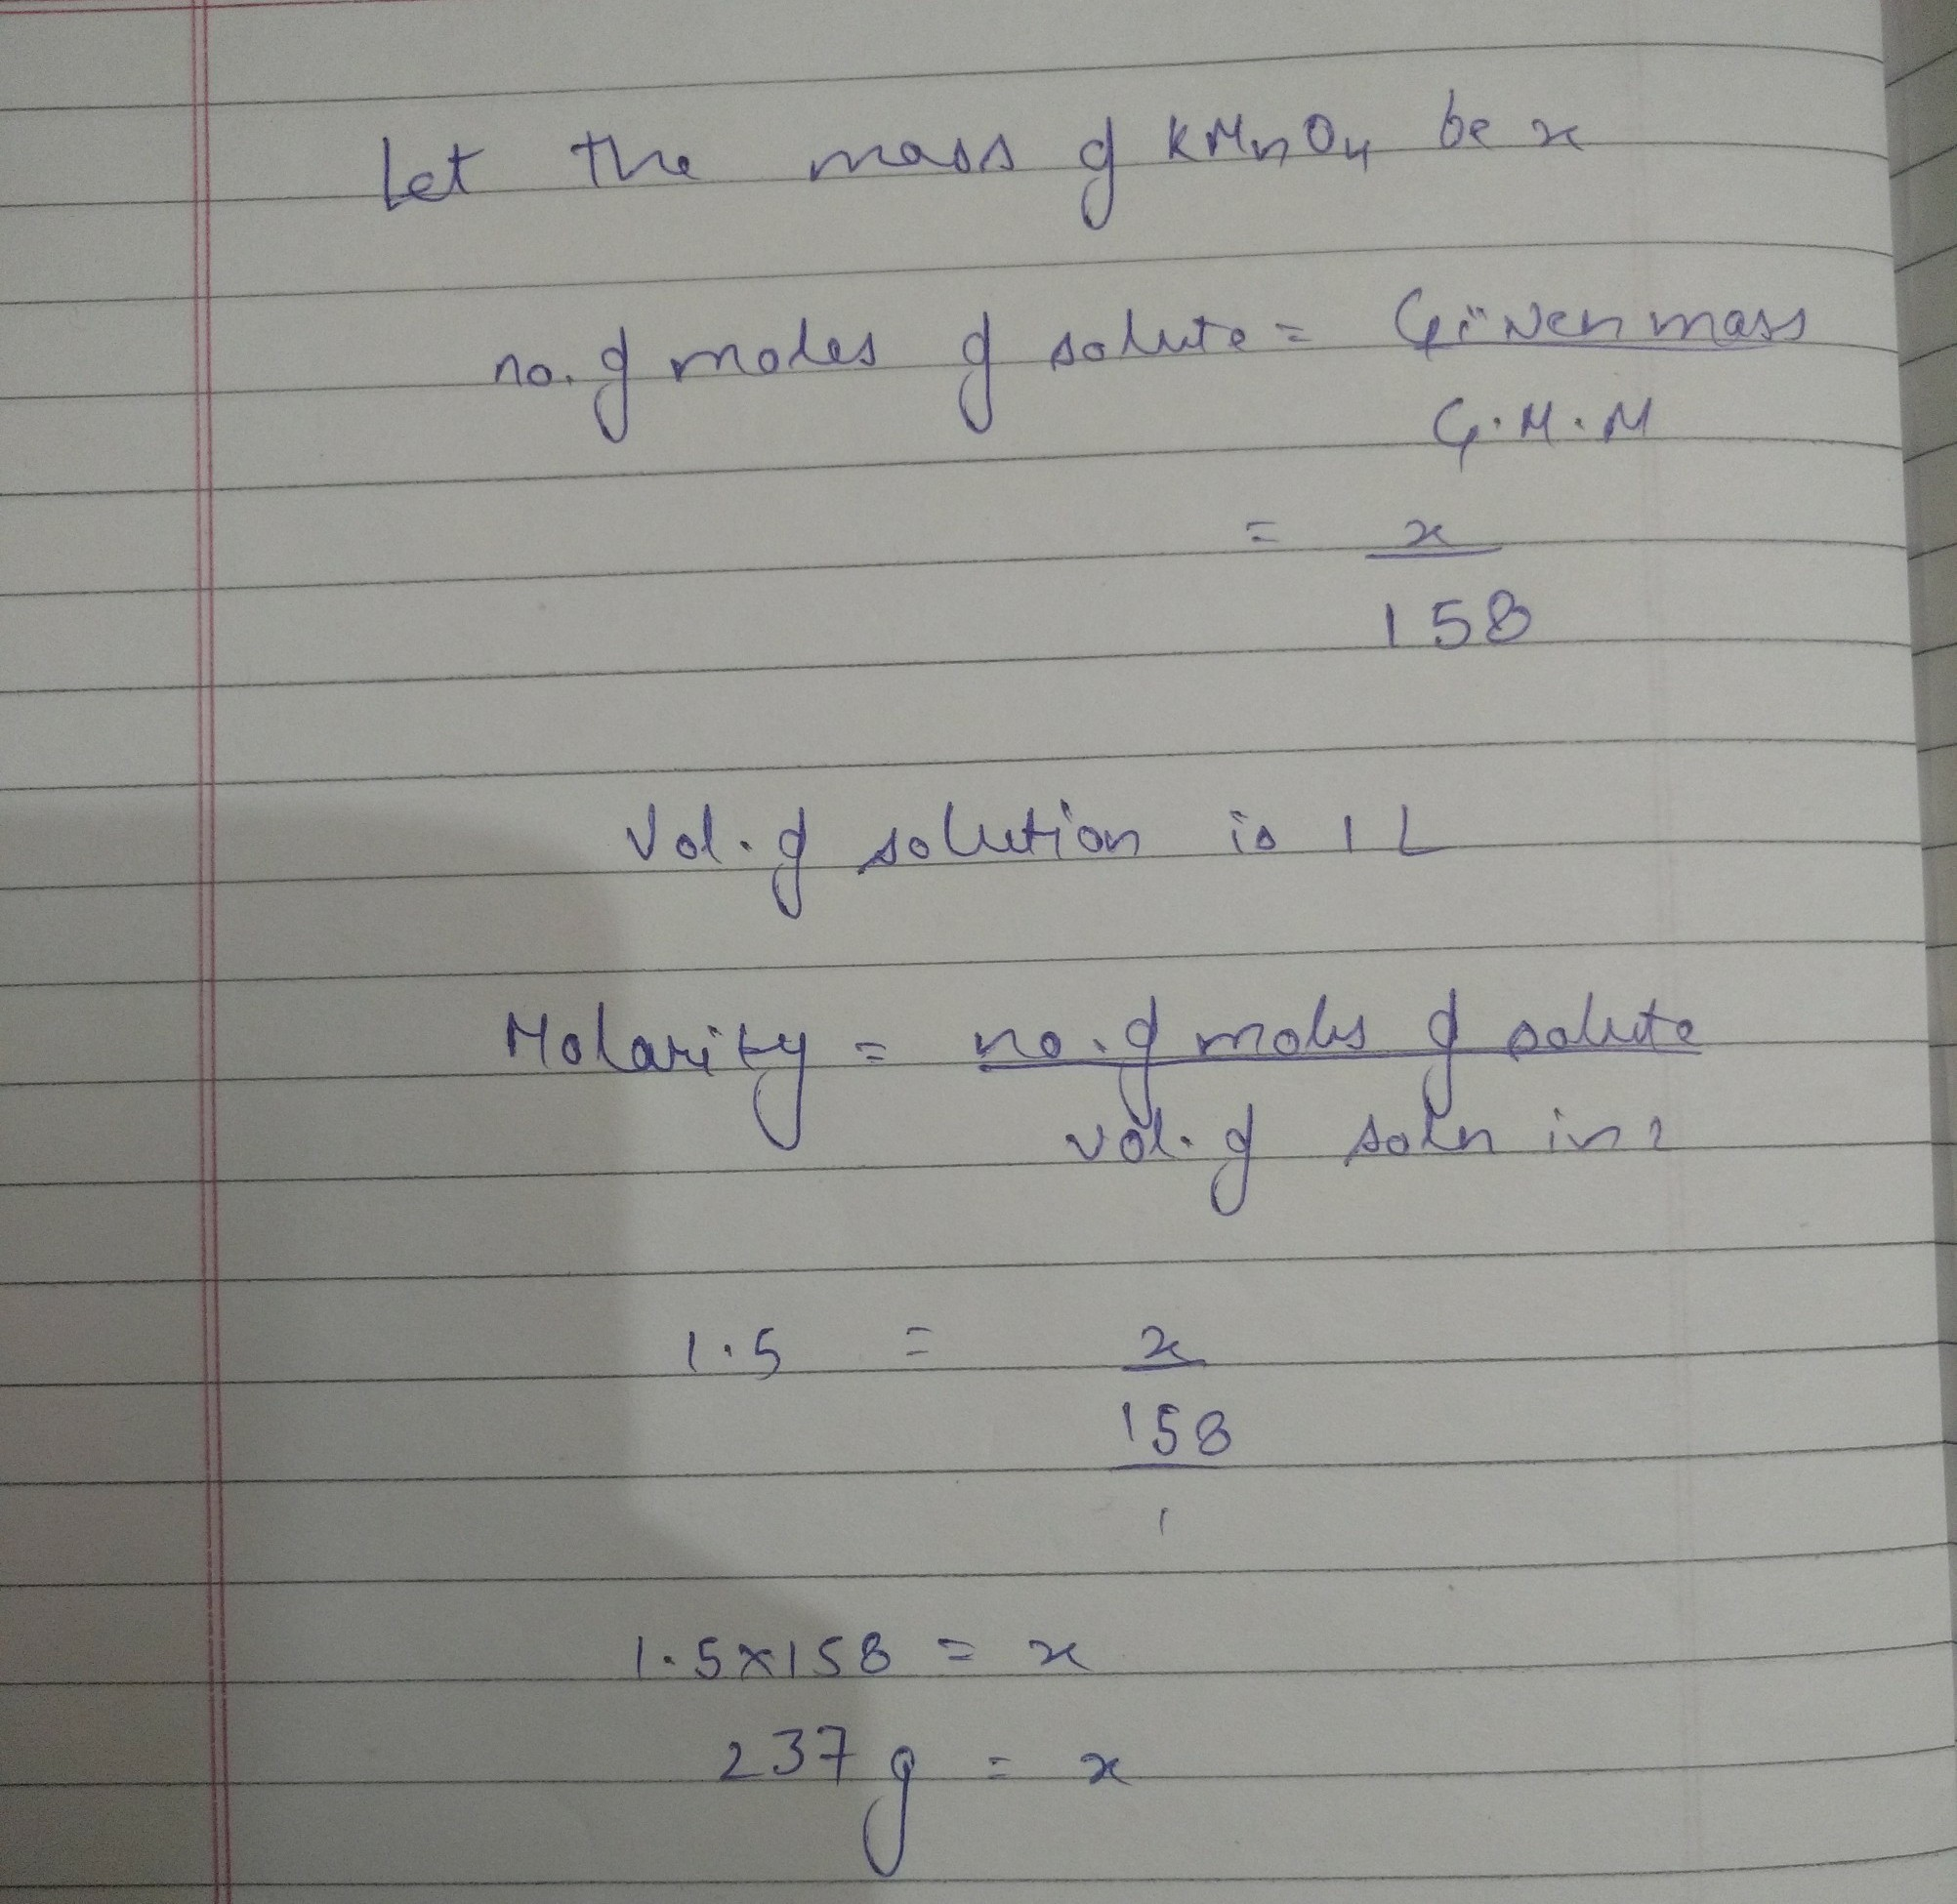 how many gram of KMnO4 are required to prepare 1 0 L of a solution